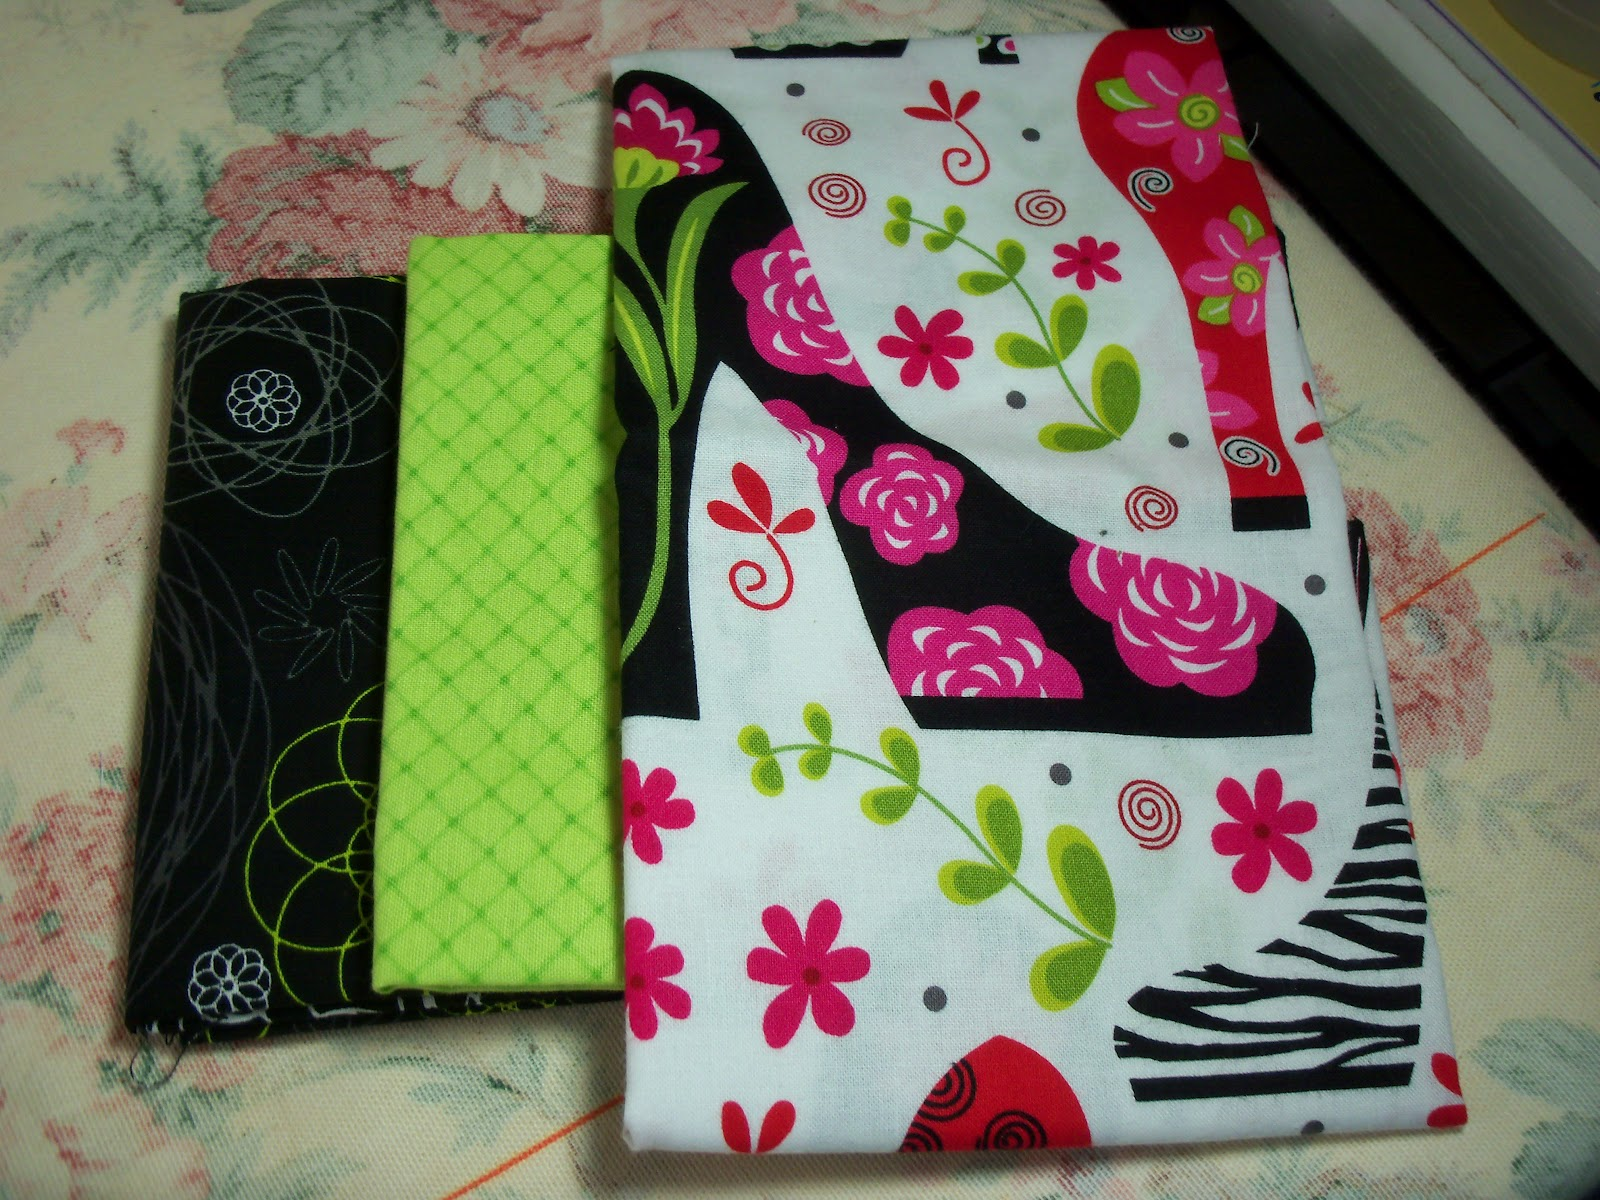 Creative b designs july 2012 for Jake quilted bedding